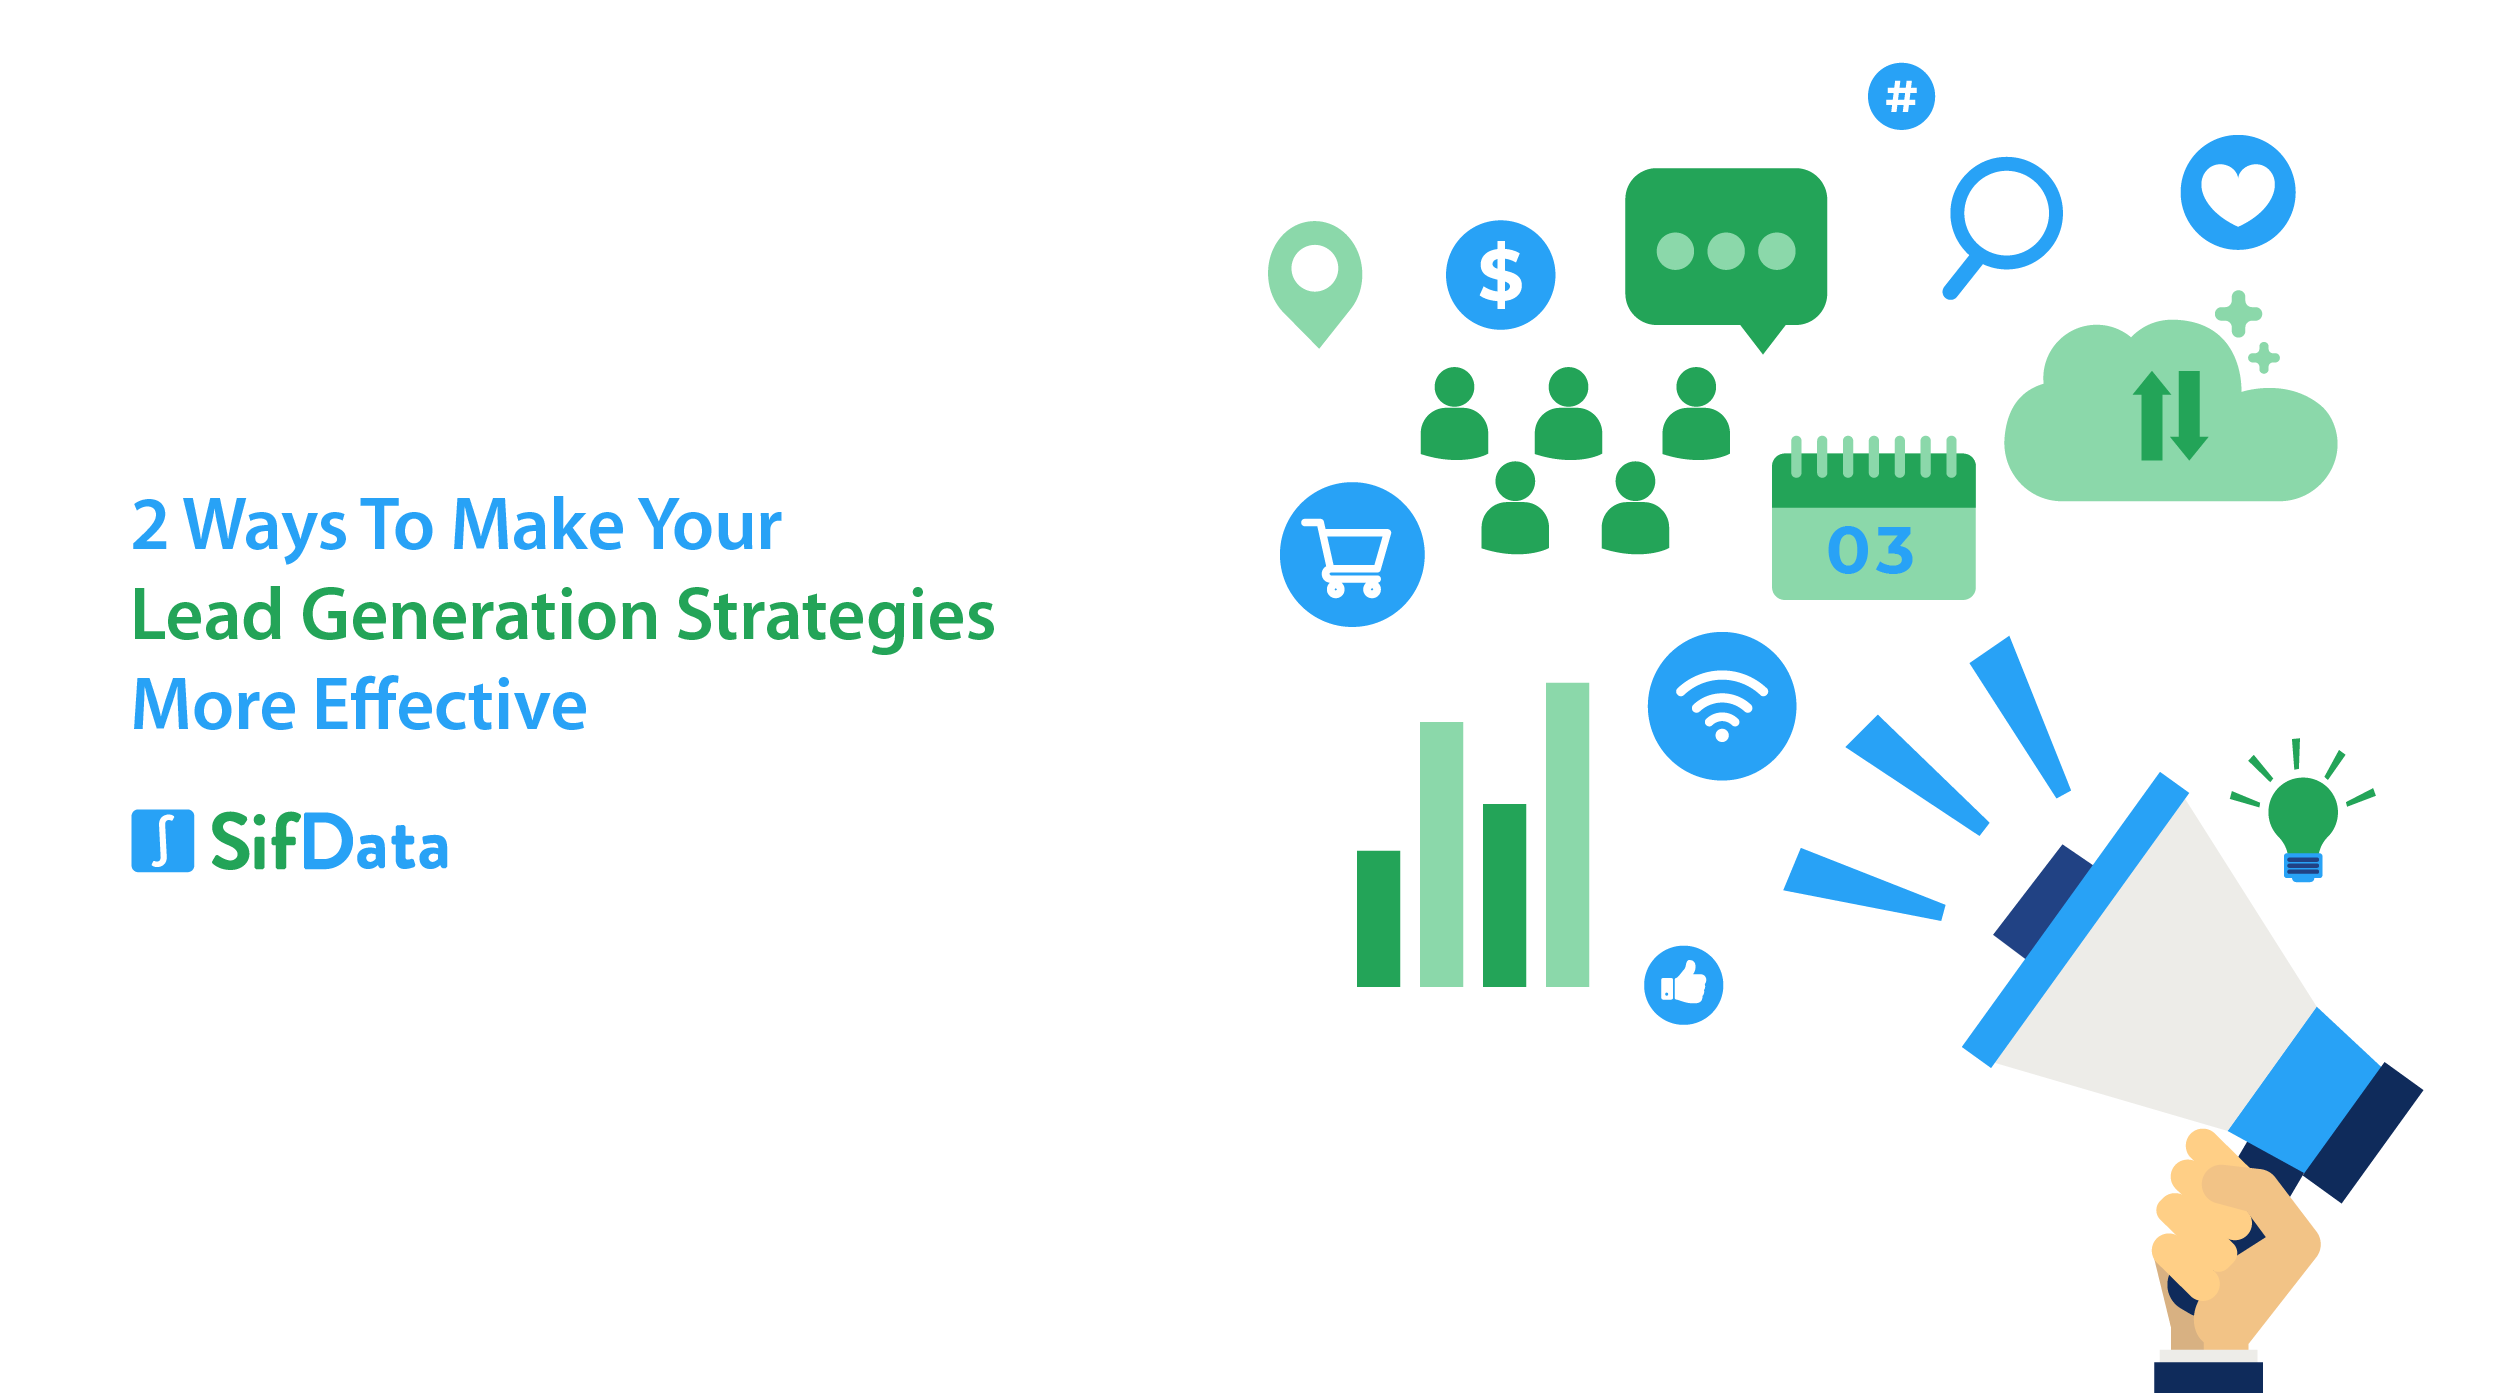 2 WAYS TO MAKE YOUR LEAD GENERATION STRATEGIES MORE EFFECTIVE